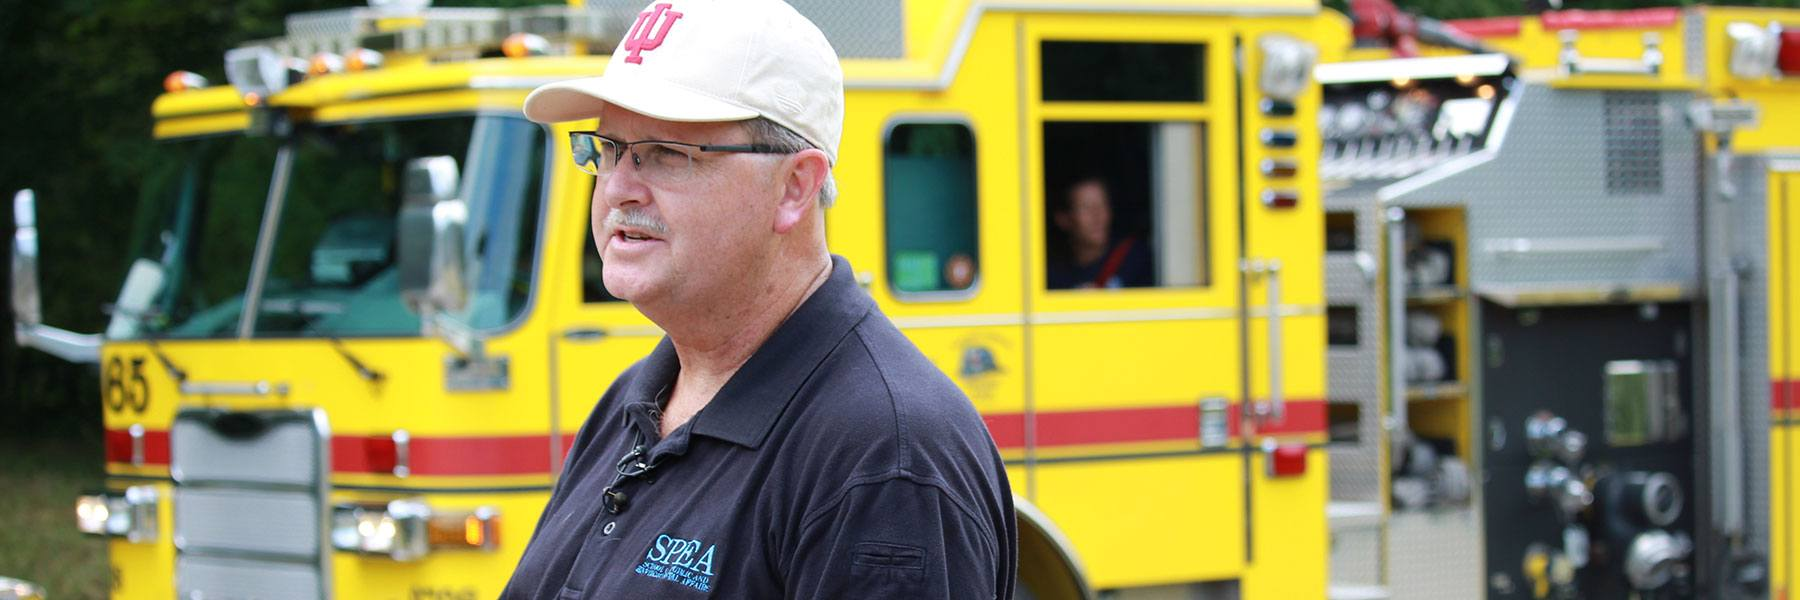 SPEA adjunct faculty member Stephen Davis stands in front of a fire truck.